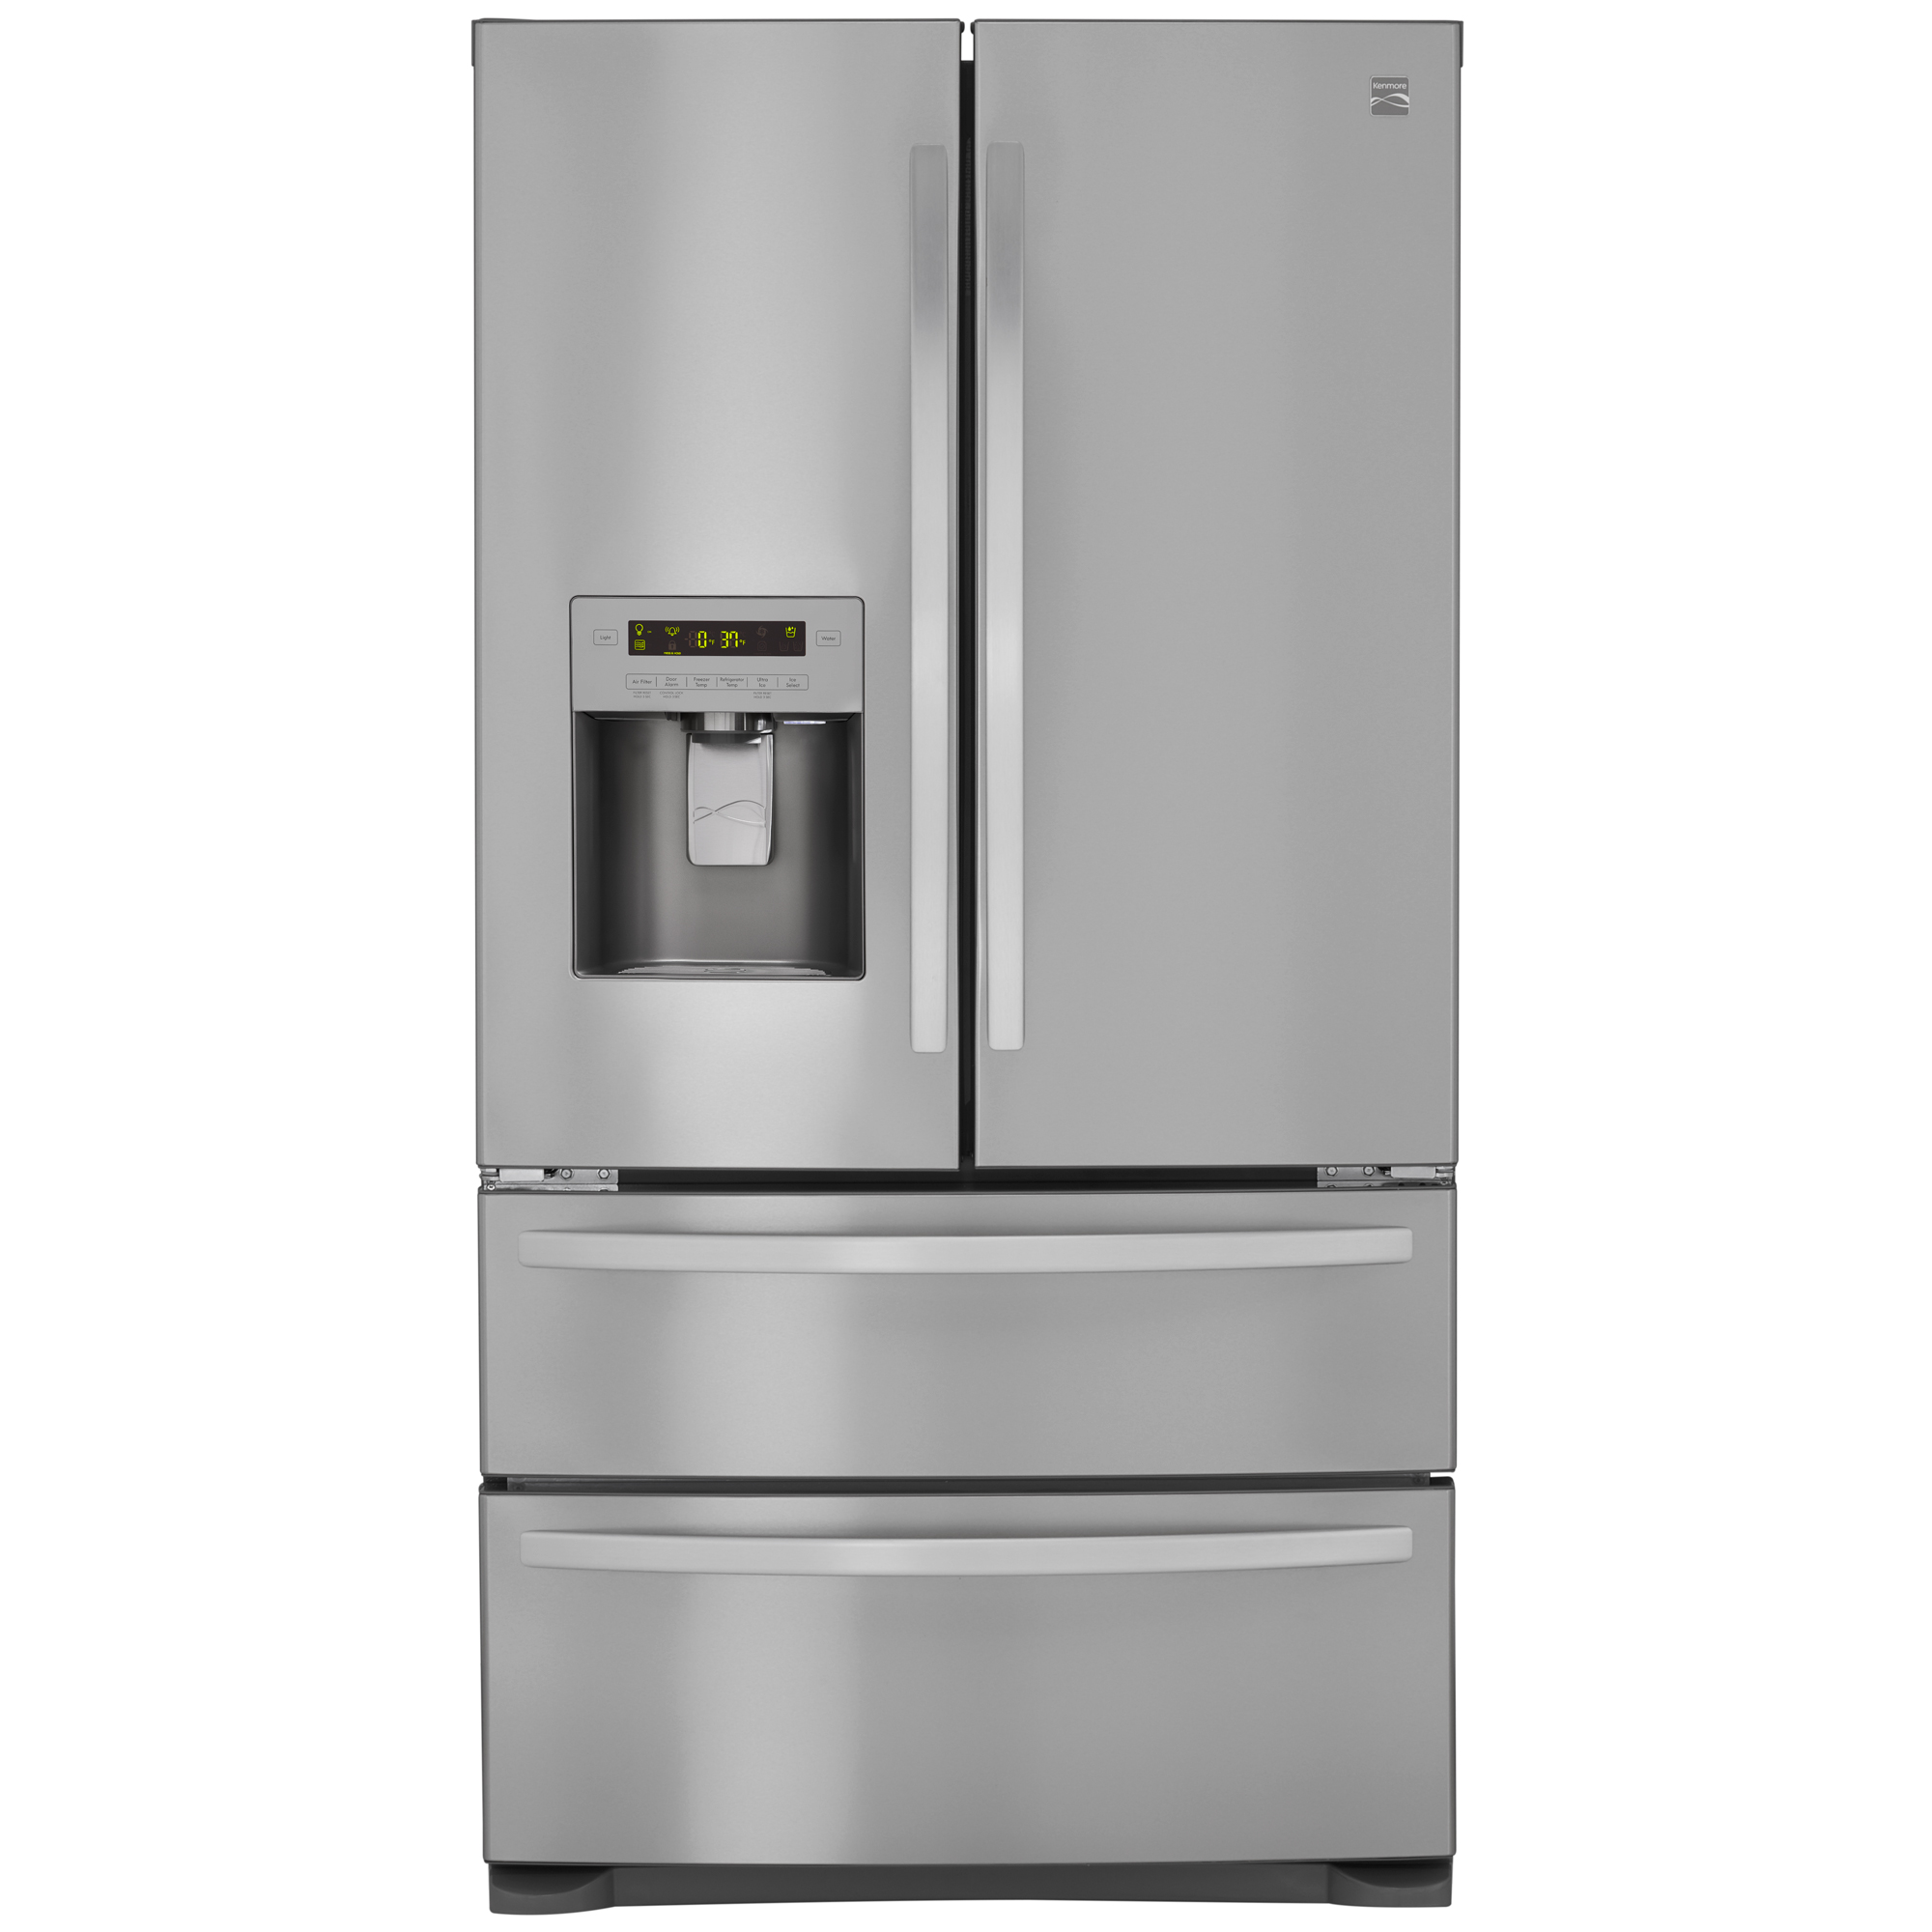 Kenmore 72495 26.7 cu. ft. 4-Door French Door Refrigerator w/Dual Freezer Drawers – Active Finish™